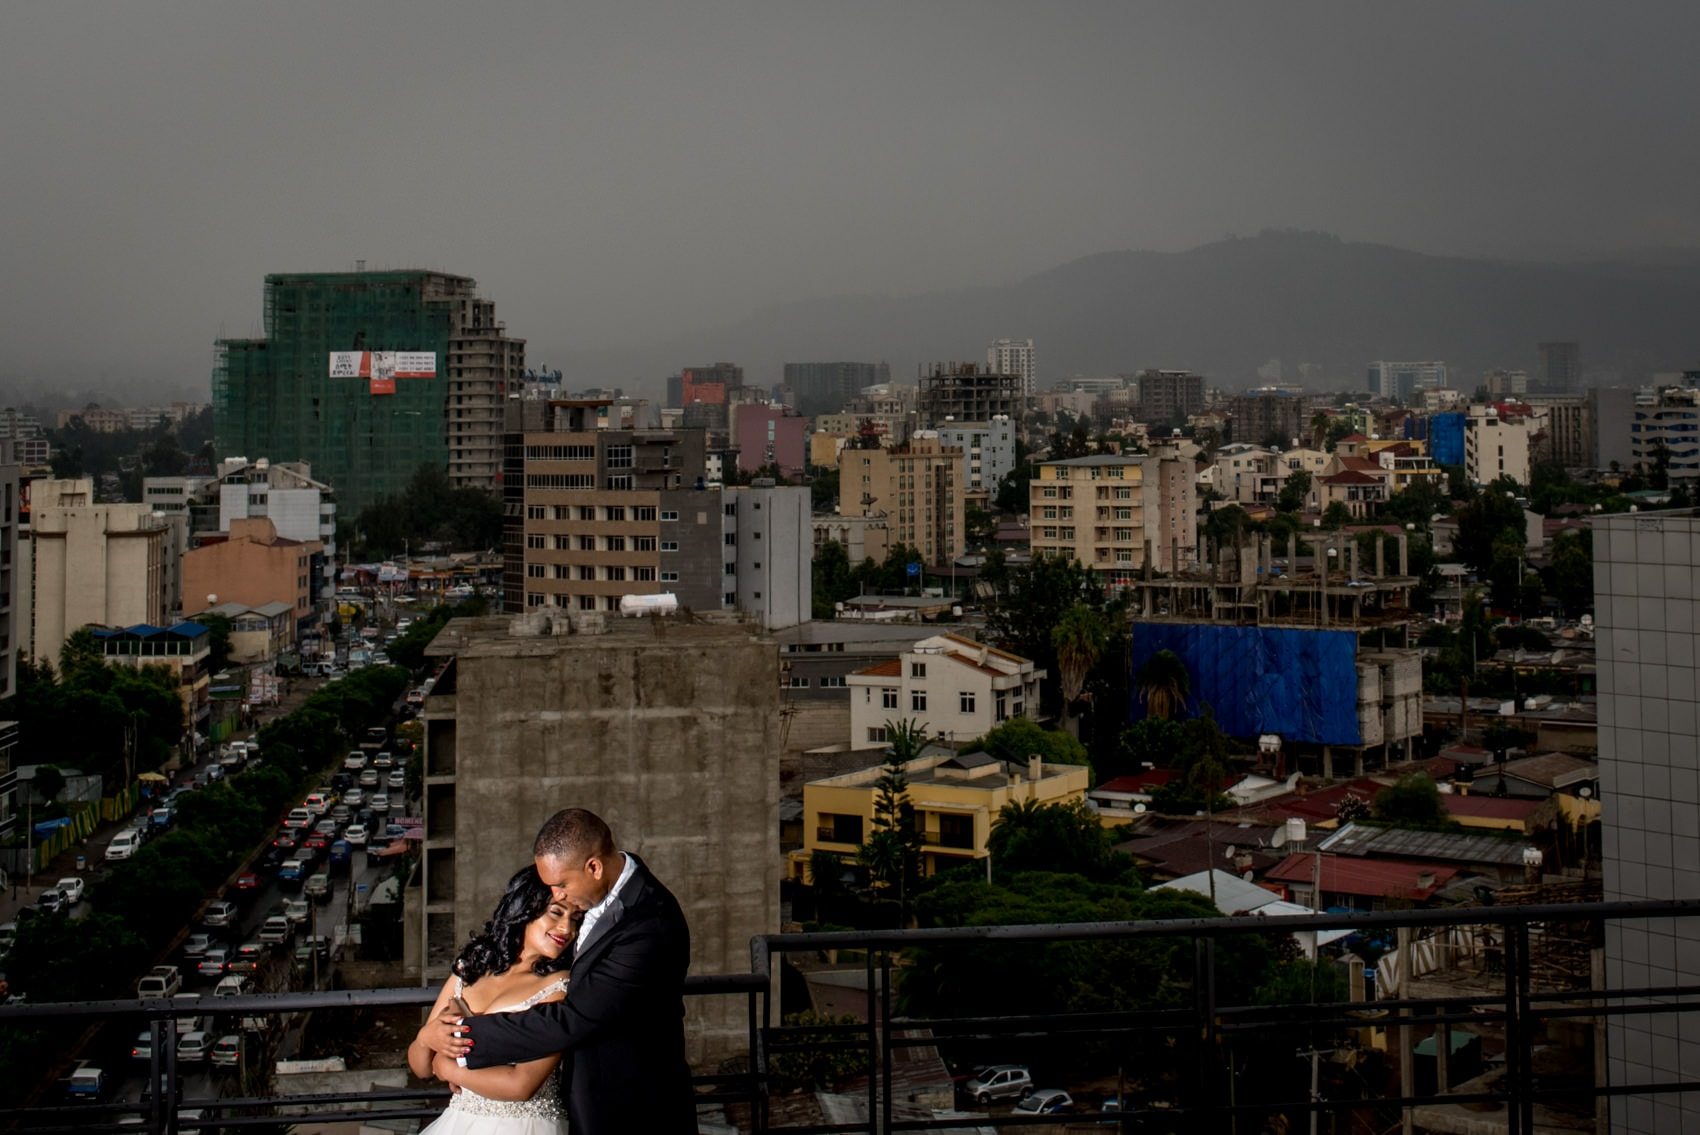 ababa wedding portraits in Ethiopia, Africa with a storm skyline